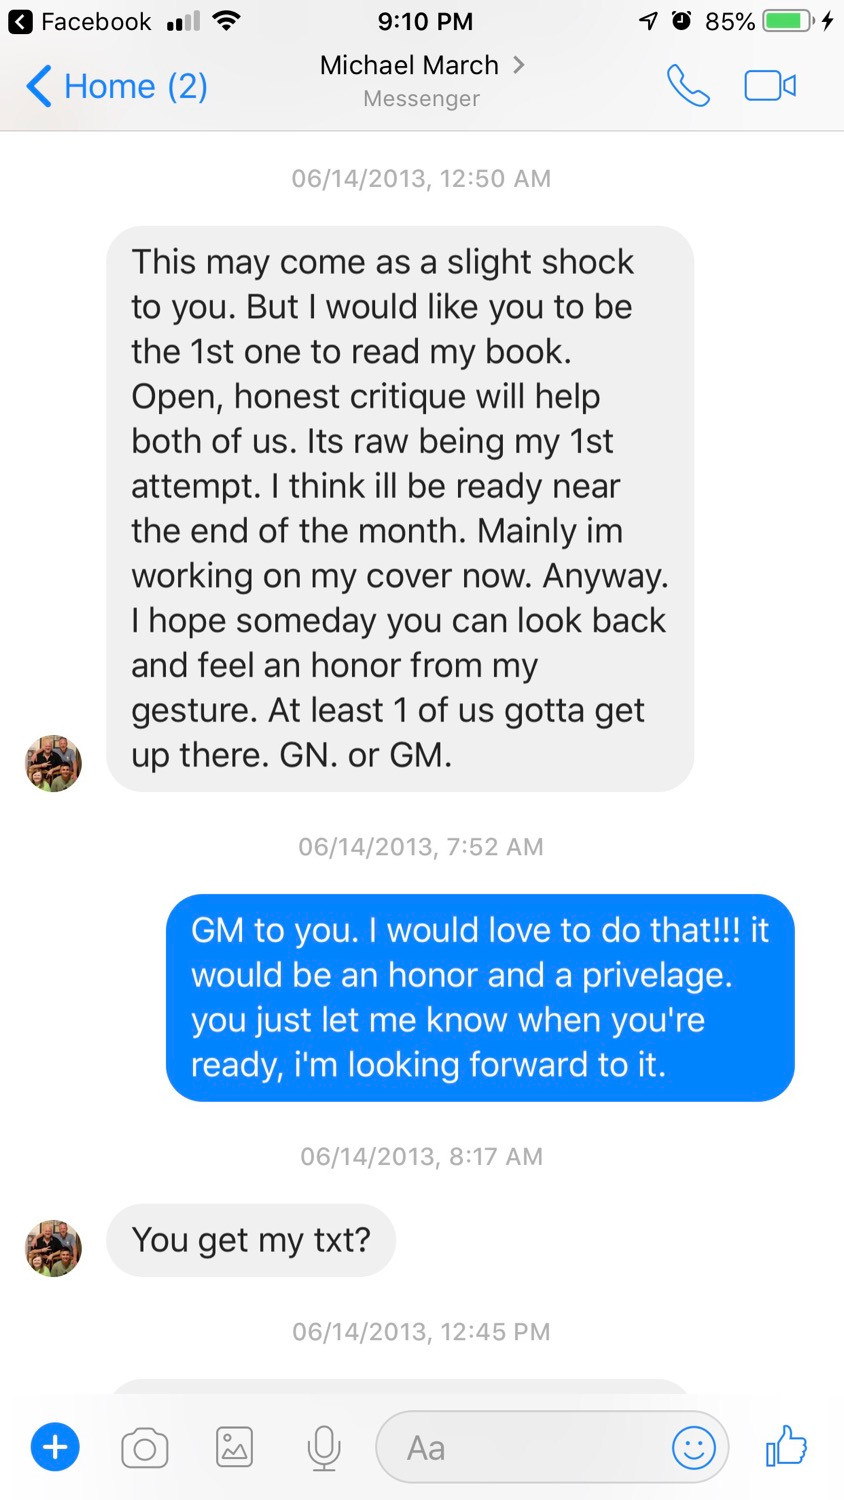 The day he entrusted his book to me